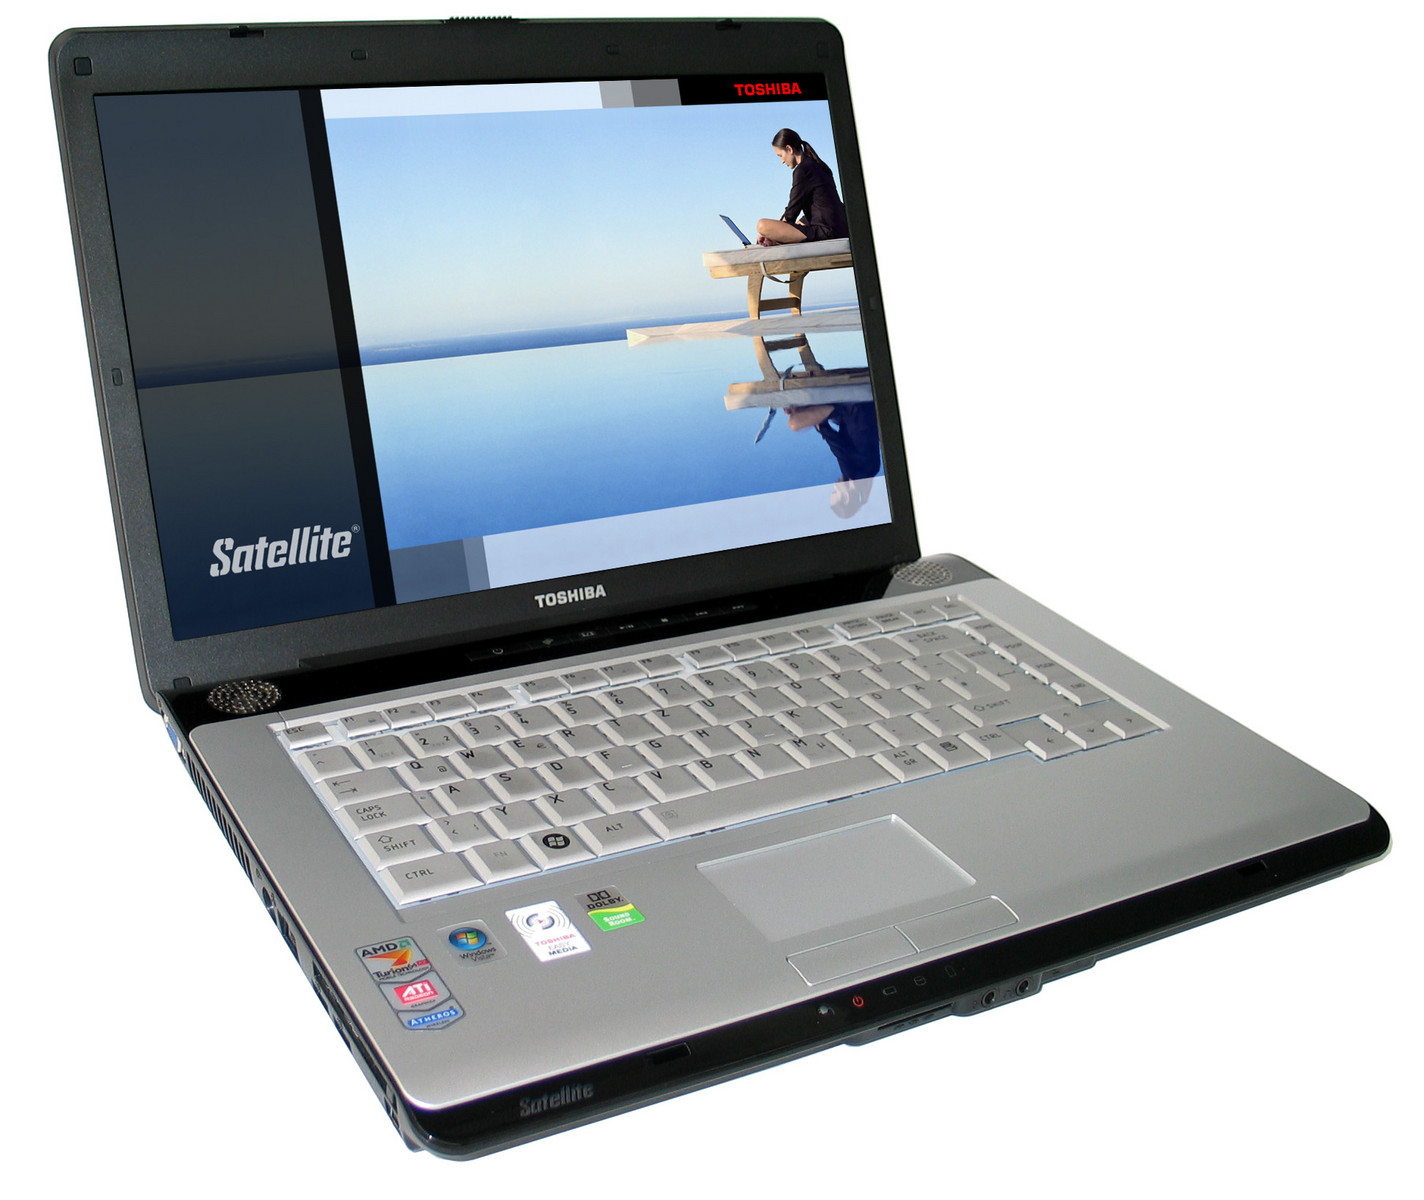 TOSHIBA SATELLITE A200 CARD READER WINDOWS 8.1 DRIVERS DOWNLOAD